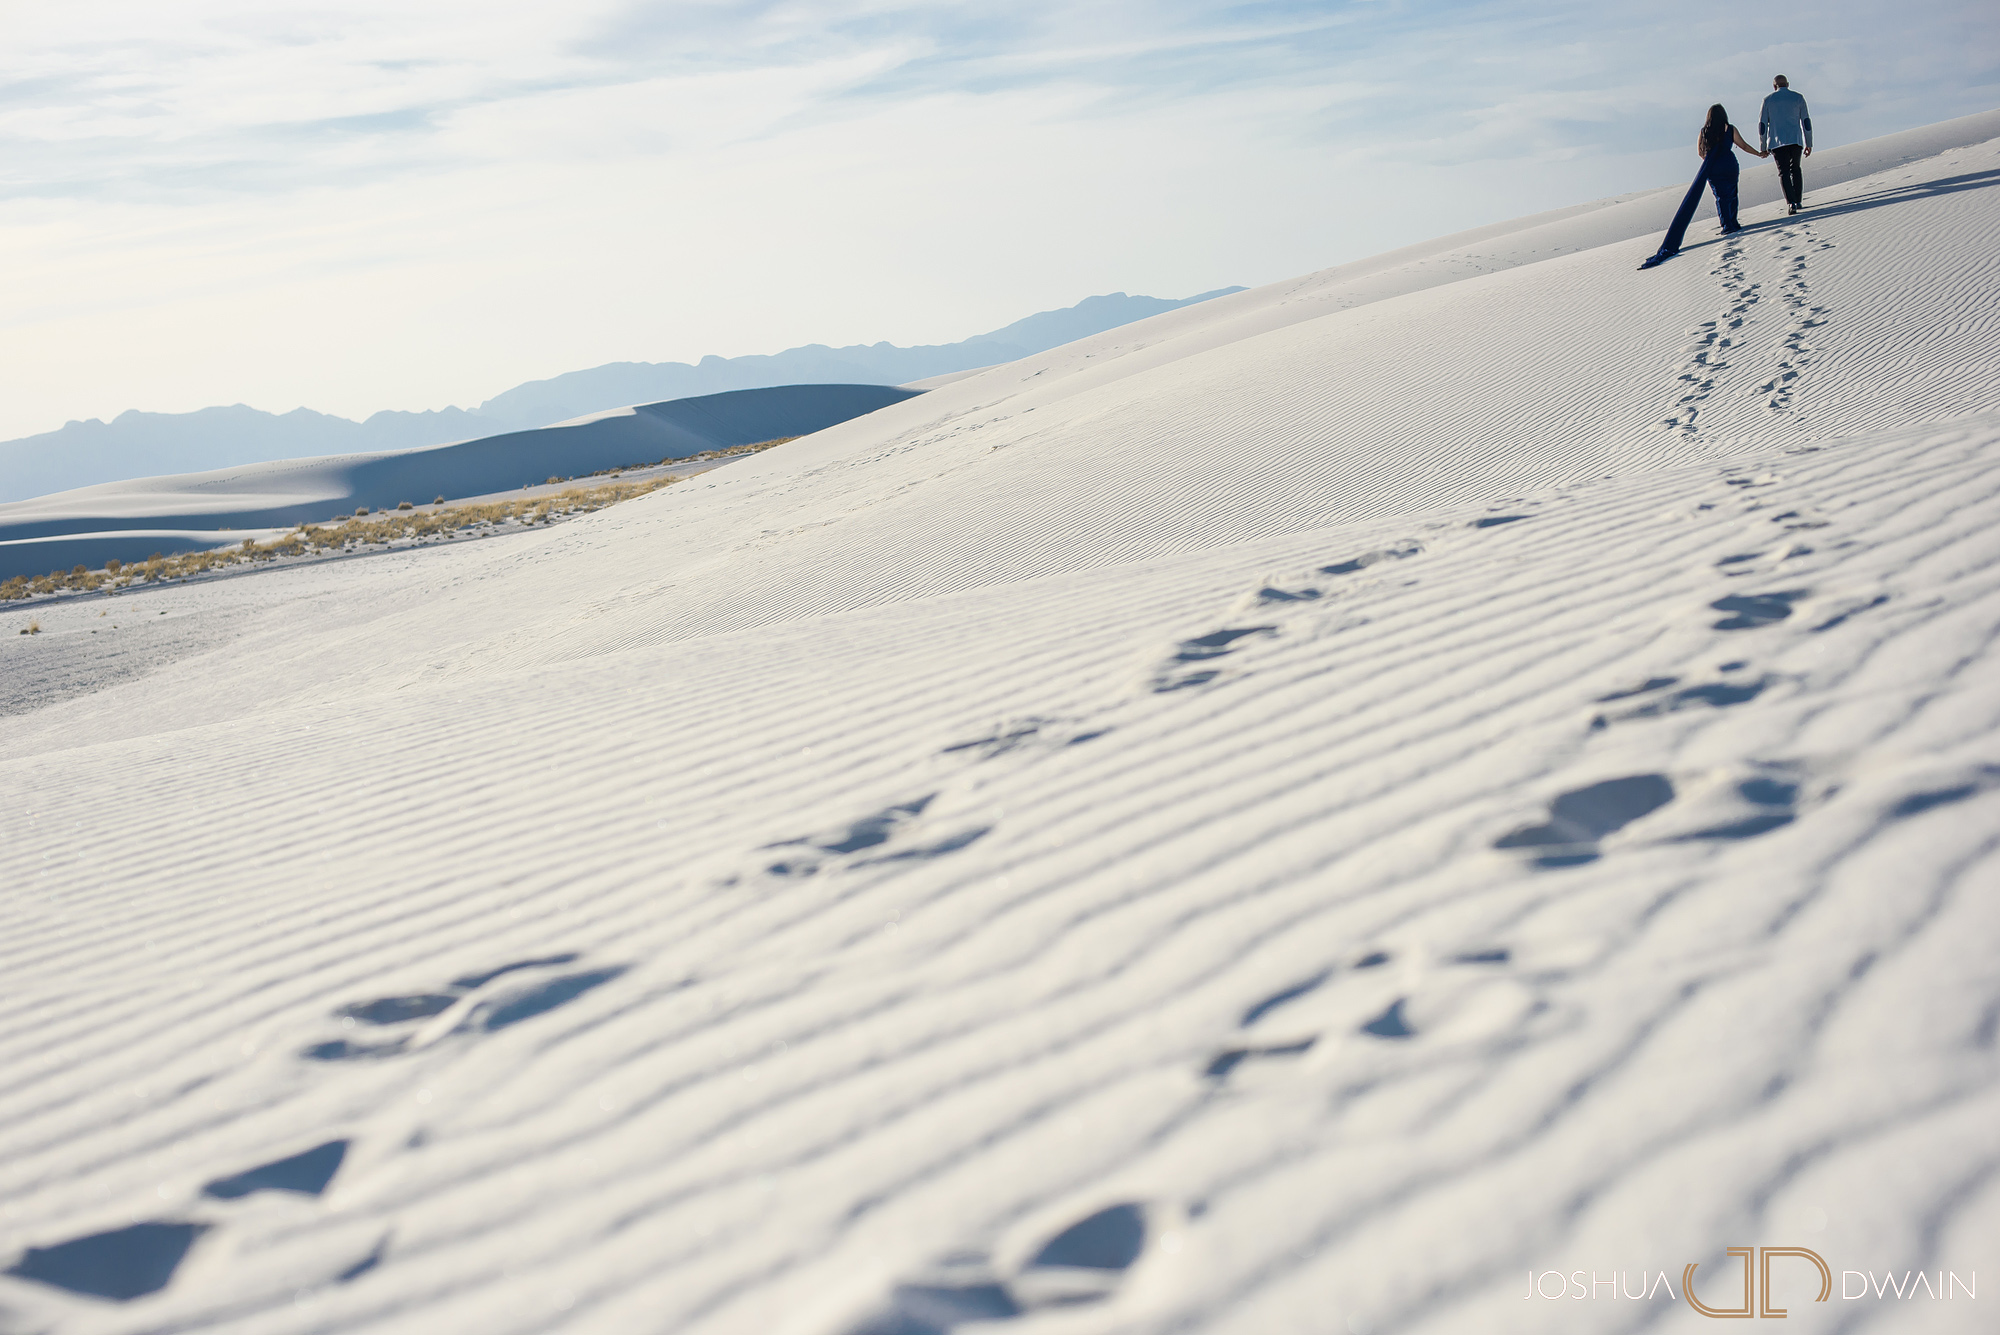 brianna-william-12-white-sands-monument-national-park-new-mexico-engagement-photographer-joshua-dwain-